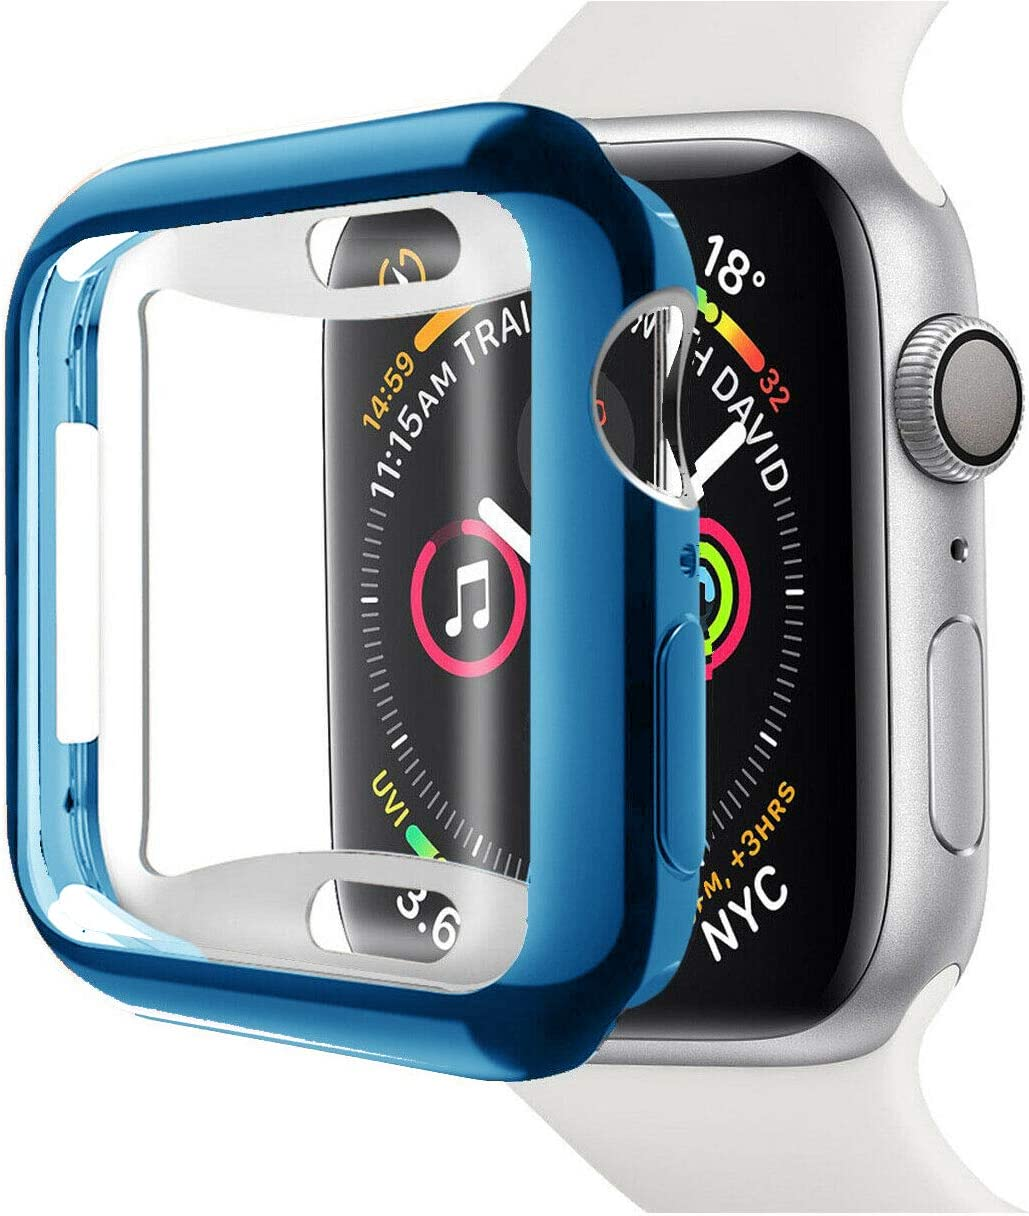 Pokanic- Apple Watch TPU Soft Full Cover Wireless Charge Ultra Light Weight Scratch Resistant Protective Screen Case HD Clear Compatible with Apple Watch SE 6 5 4 3 2 1 Series (Blue, 38mm)